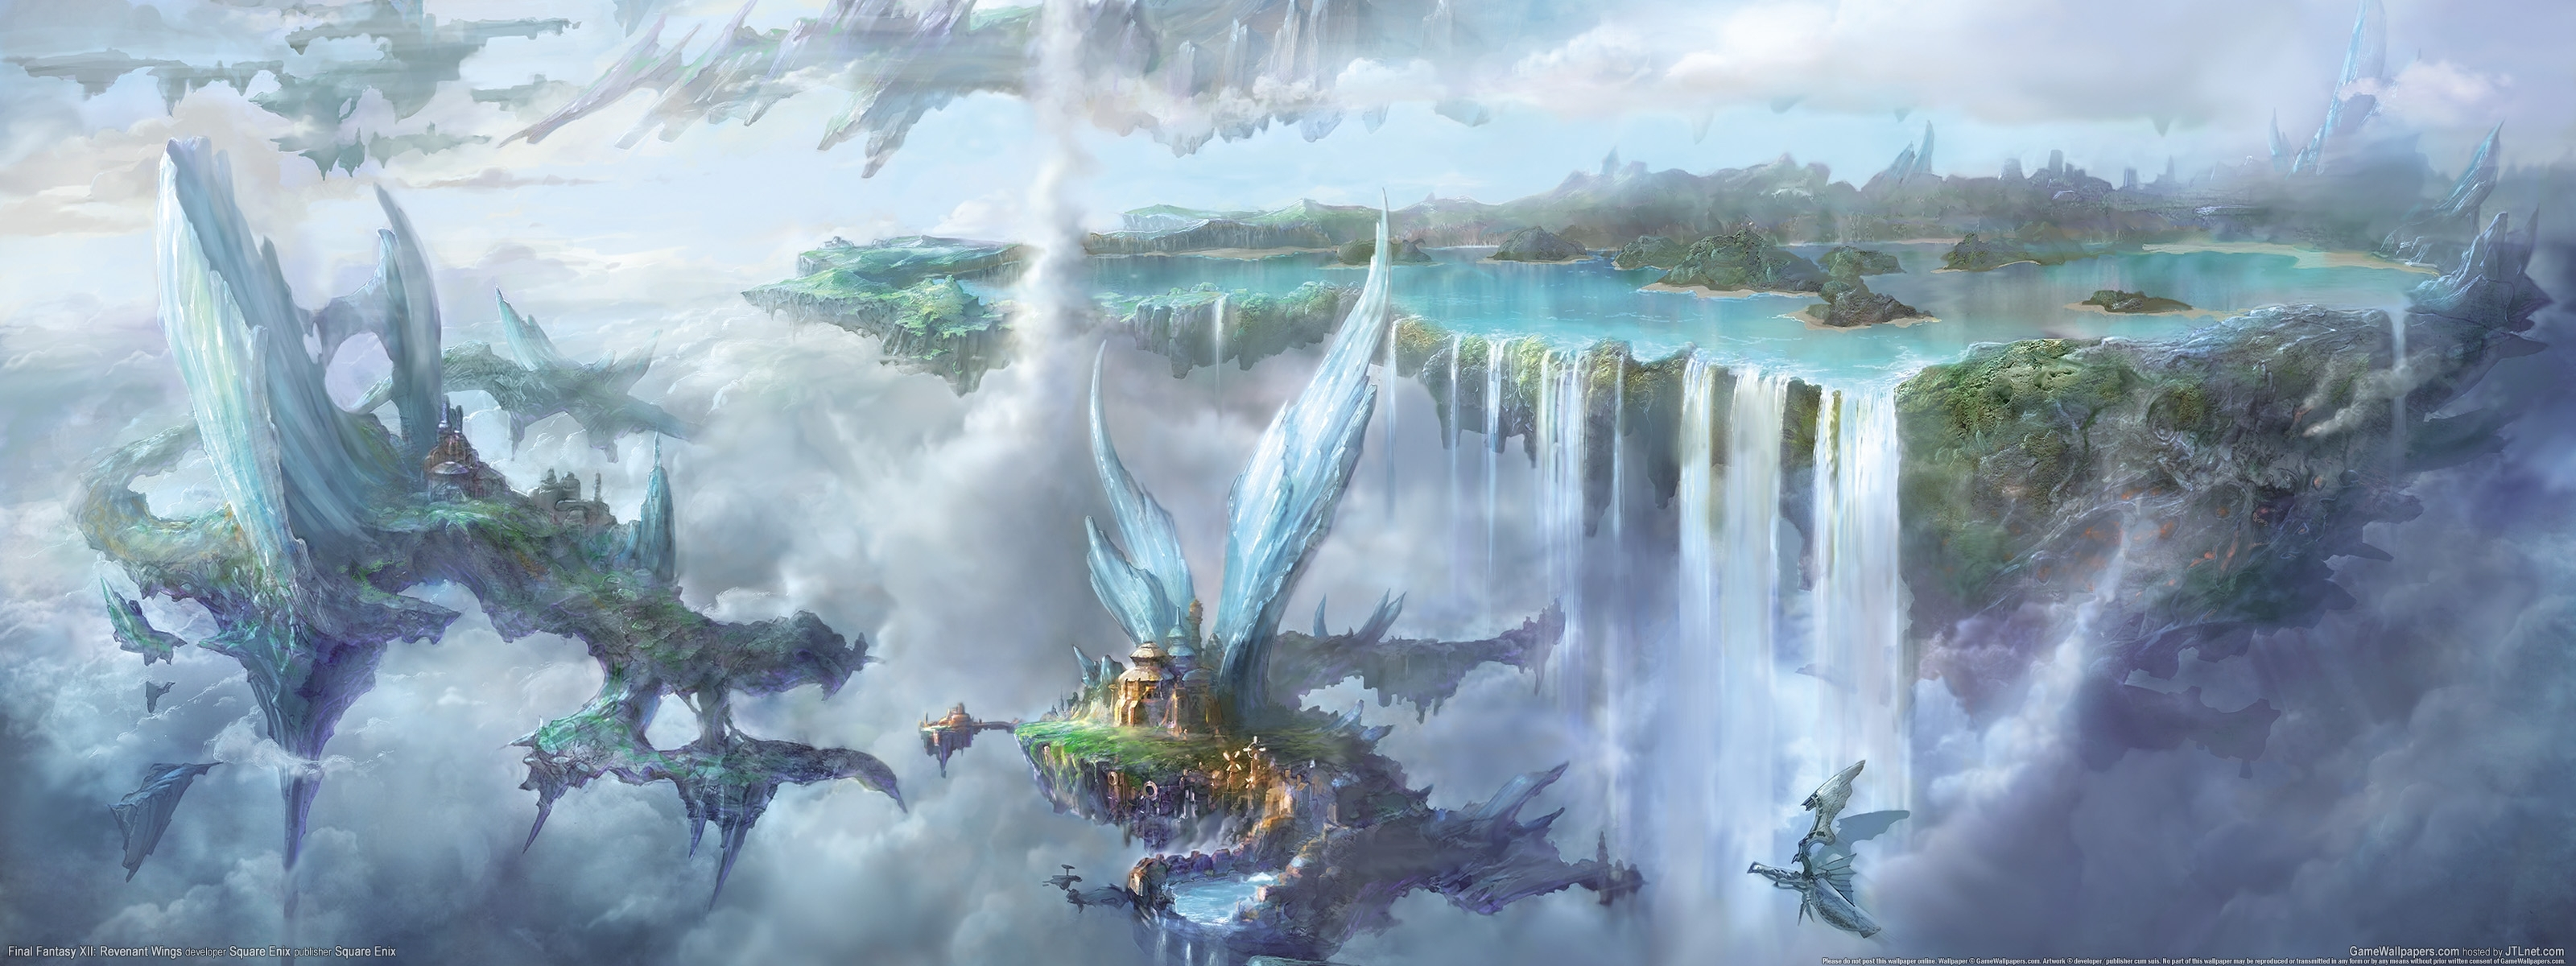 10 Latest Final Fantasy Landscape Wallpaper Hd FULL HD 1920×1080 For PC Background